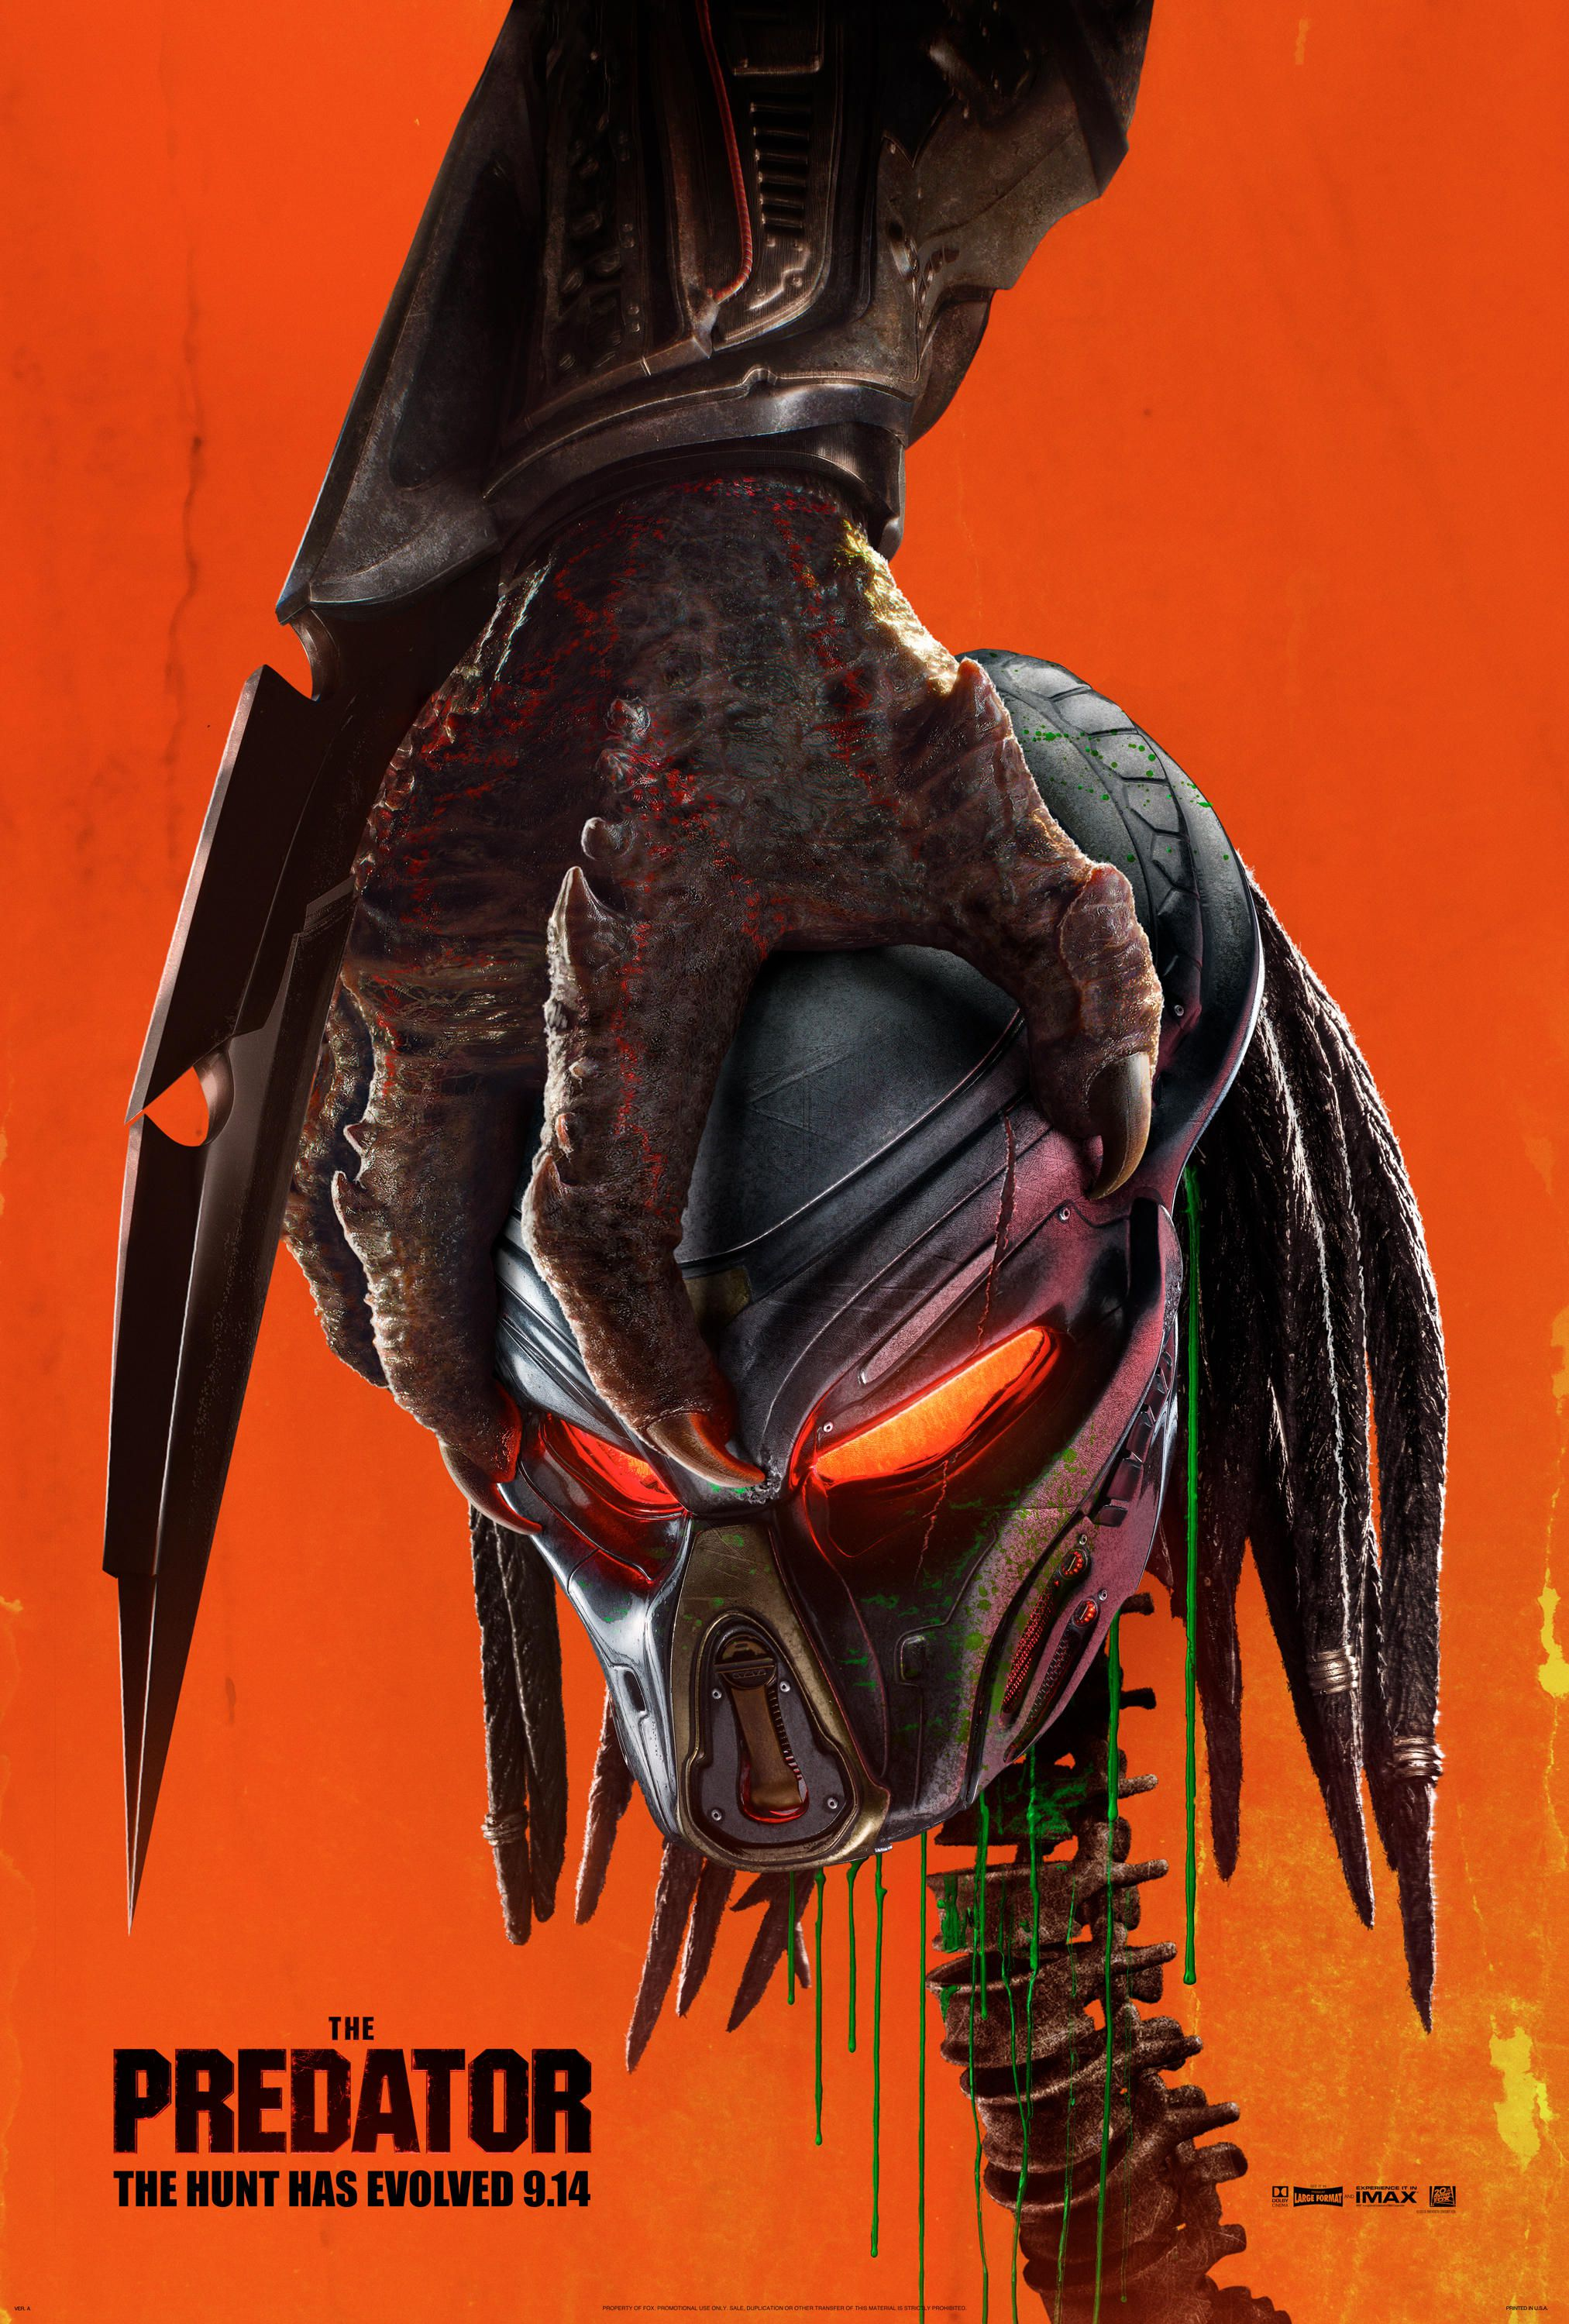 The Predator Movie Poster 2018